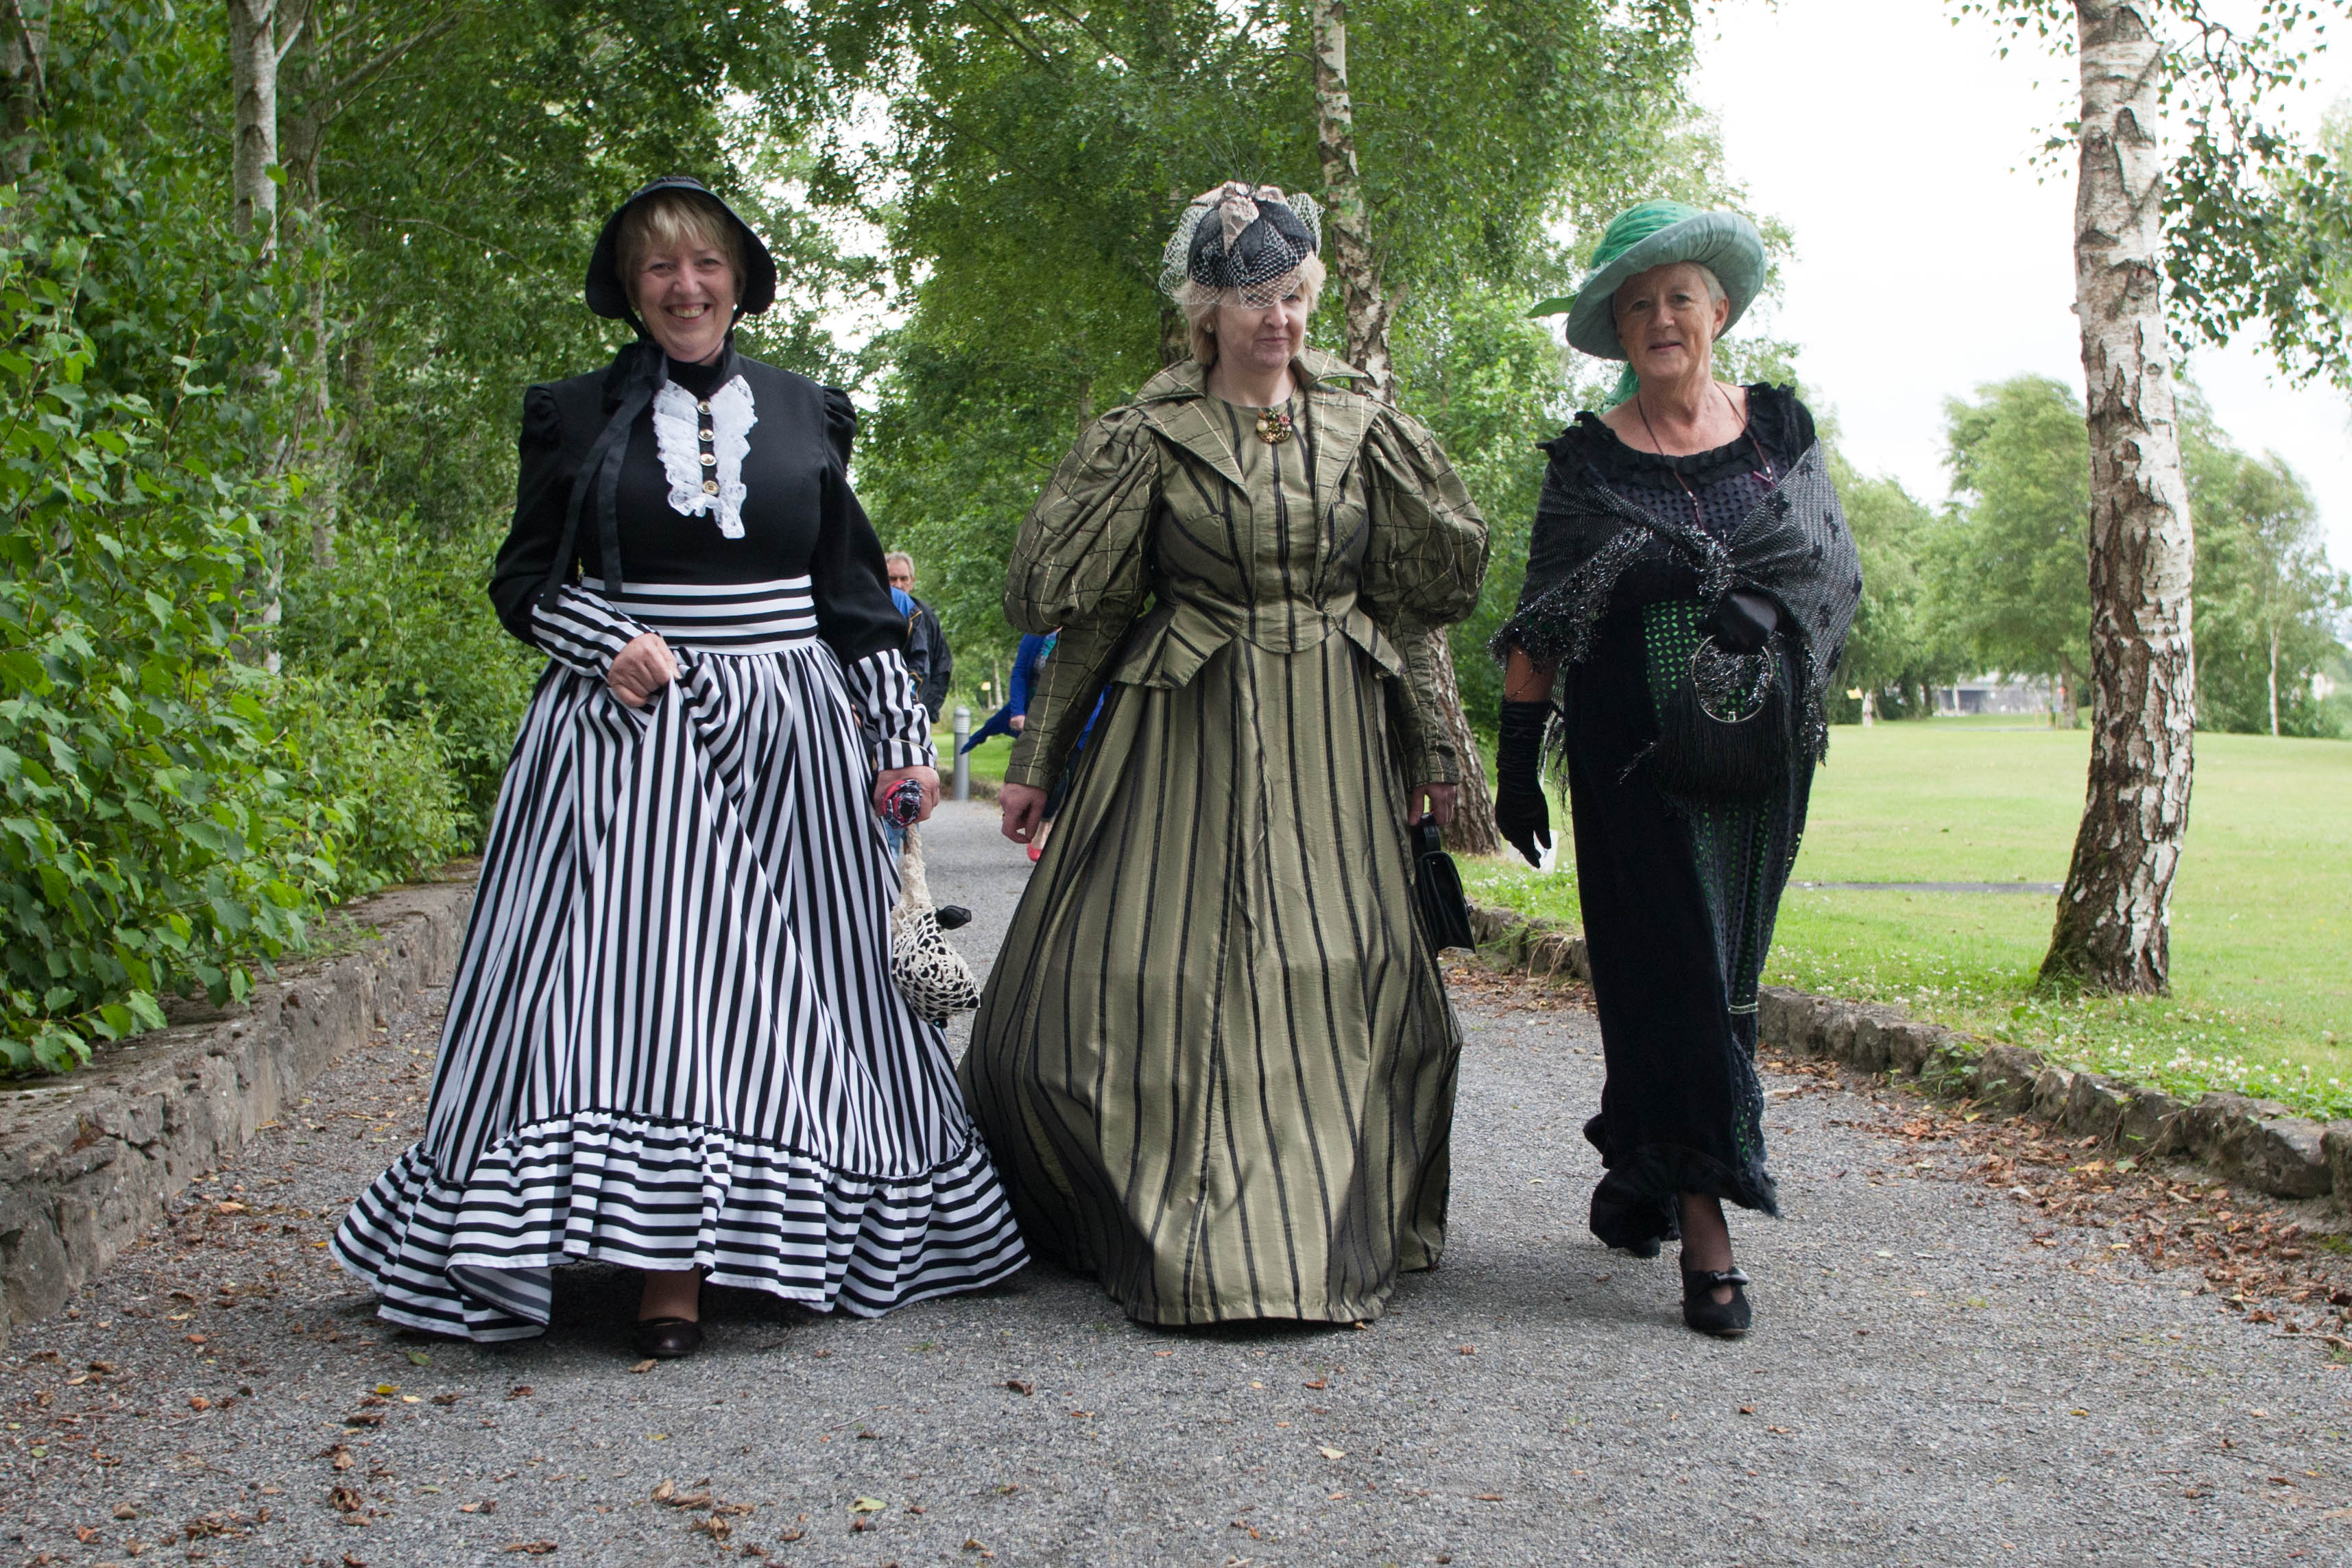 Carmel Rourke, Josephine Devery and Cora Stronge Smith strolling along to the Official opening of the Trollope Bridge at Banagher Pitch and Putt Club during the That Beats Banagher Festival. Picture: Ger Rogers/HR Photo.